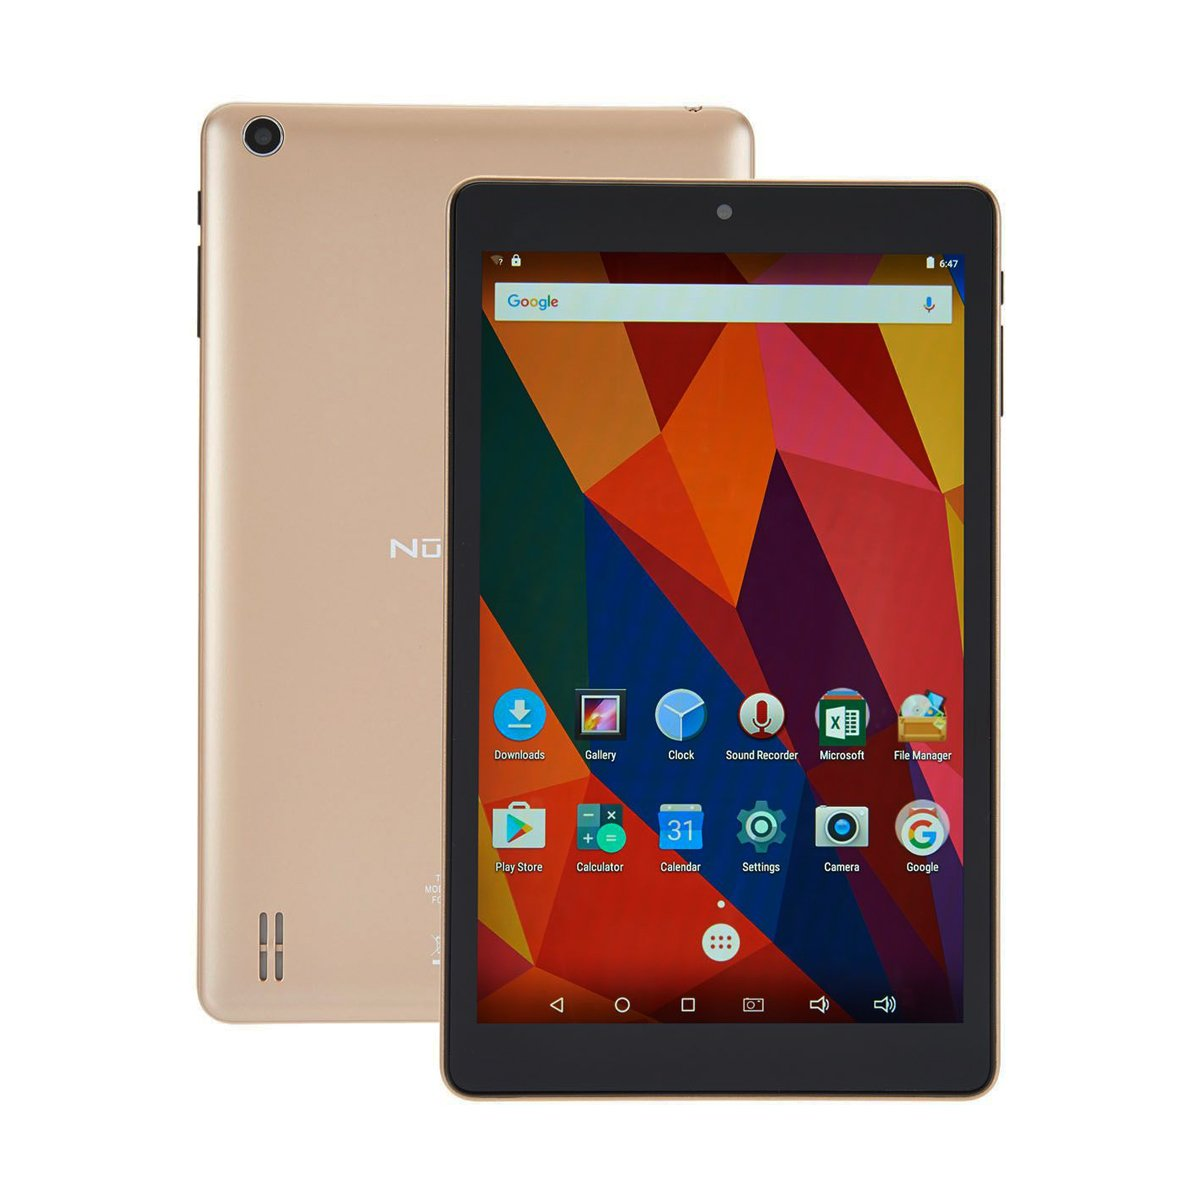 Nuvision 8 inch HD Touchscreen Android Tablet Case, 1.3GHz Cortex-A7 Quad-core Processor, 16GB Storage 1GB RAM WiFi, Bluetooth 4.0 Dual Cameras (Gold)